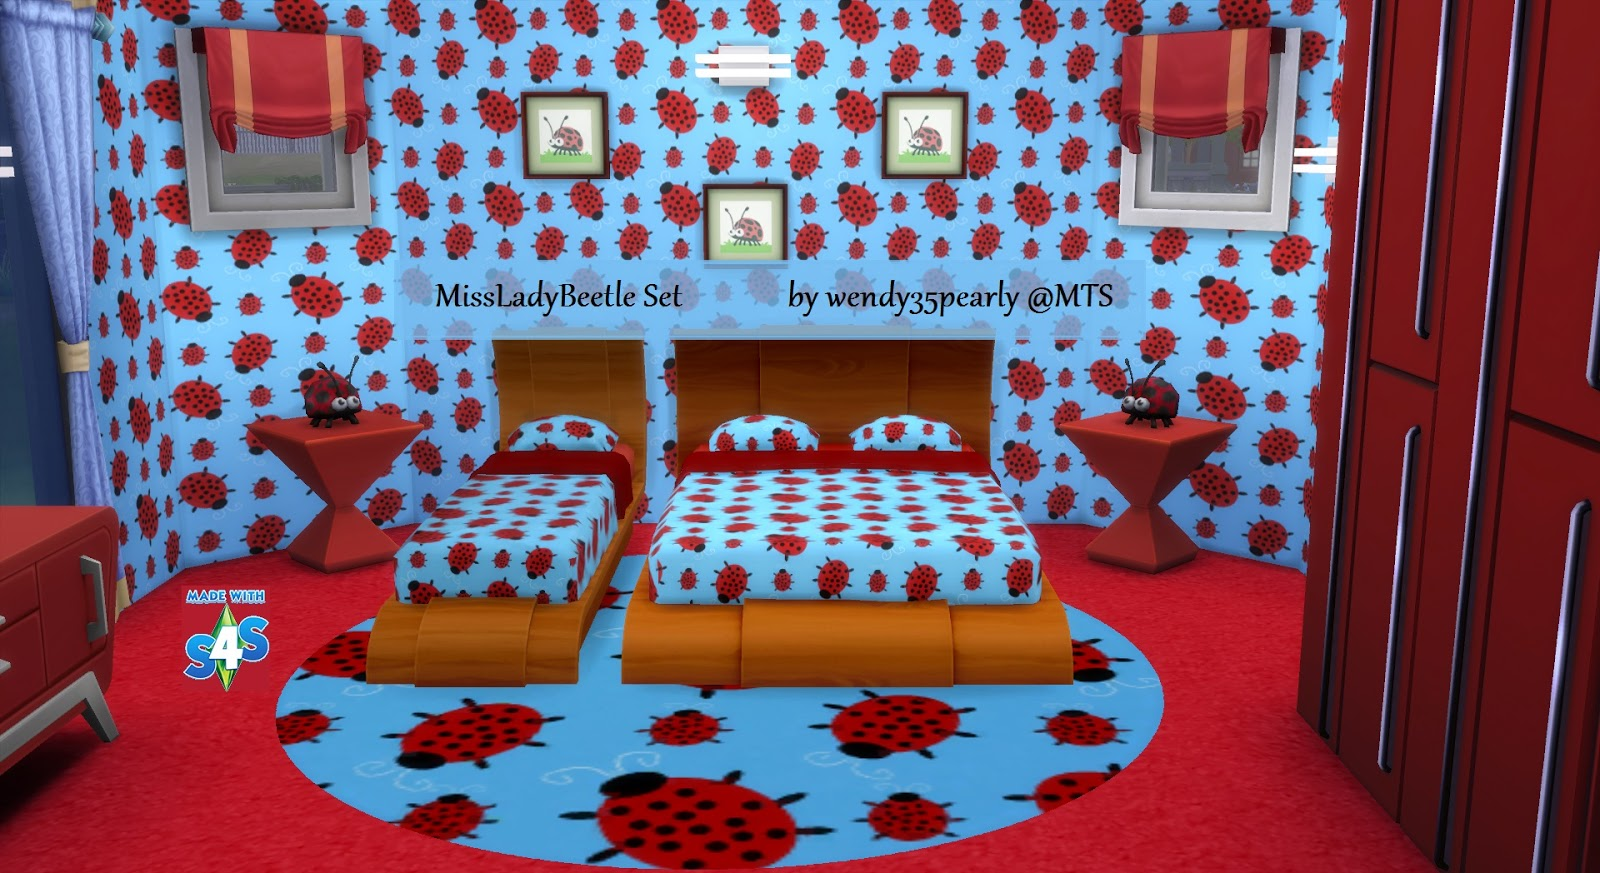 My sims 4 blog cute kid teen bedroom set by wendy35pearly for Cute bedroom furniture sets